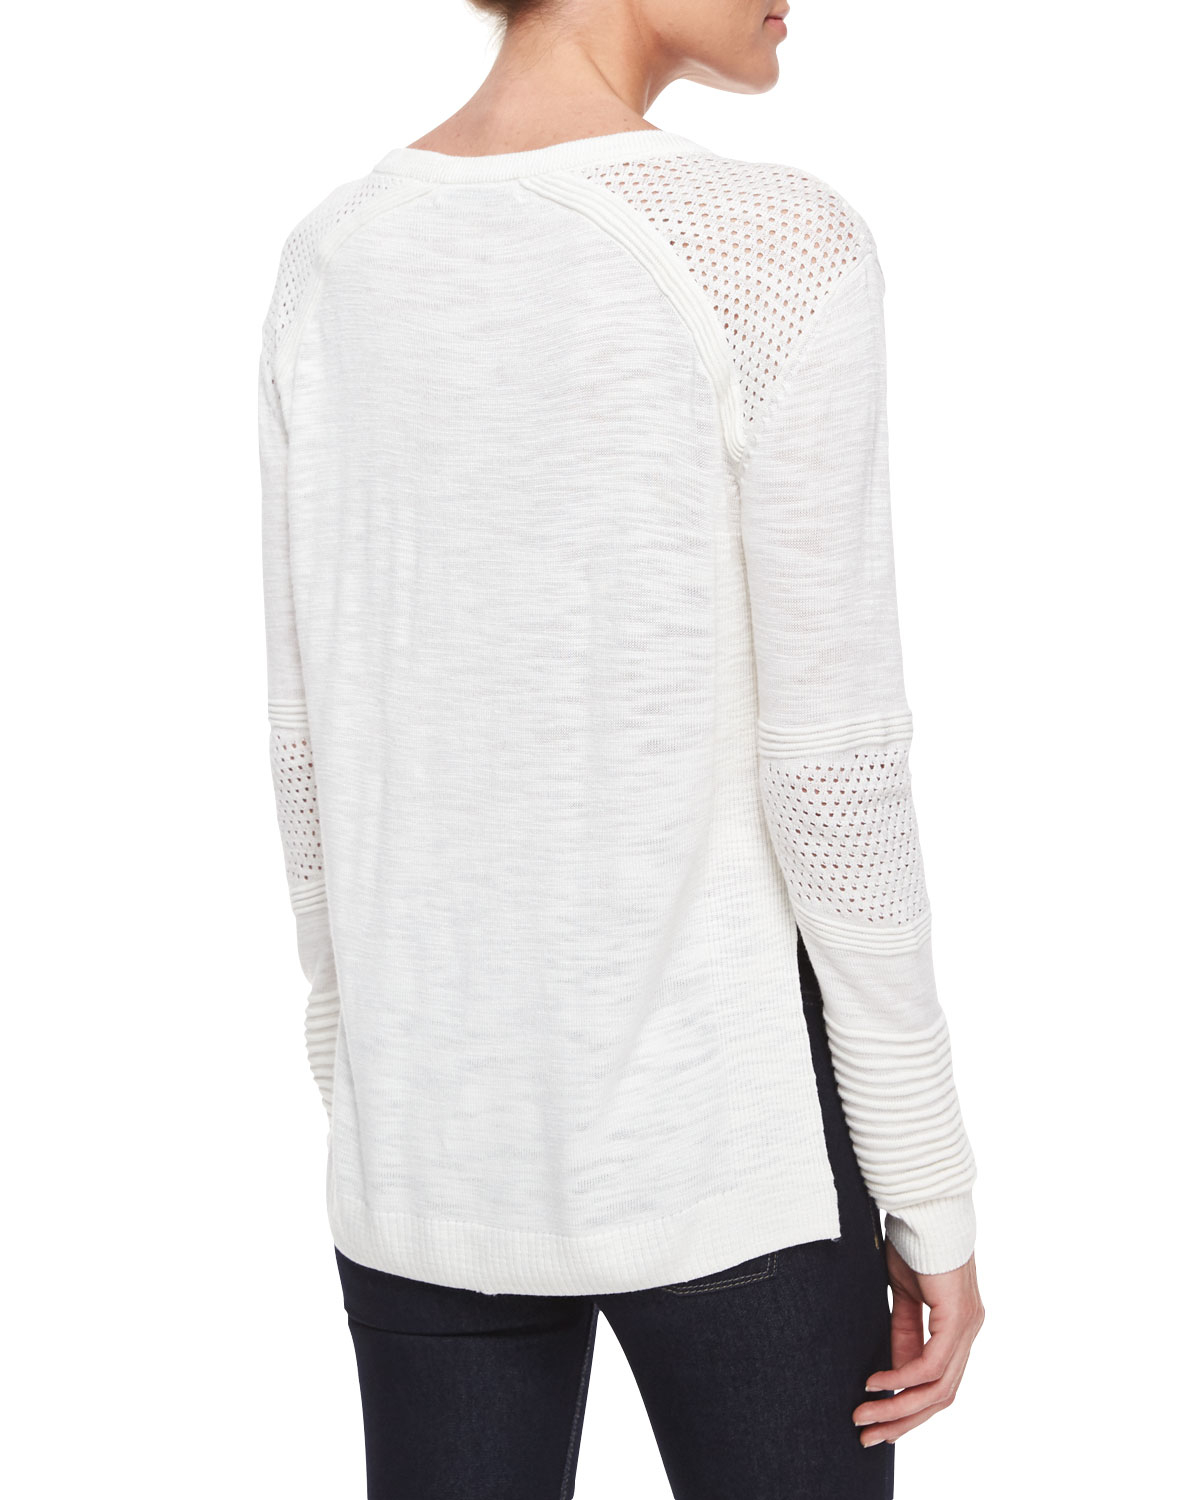 Milly Textured Mesh Pullover Sweater in White | Lyst